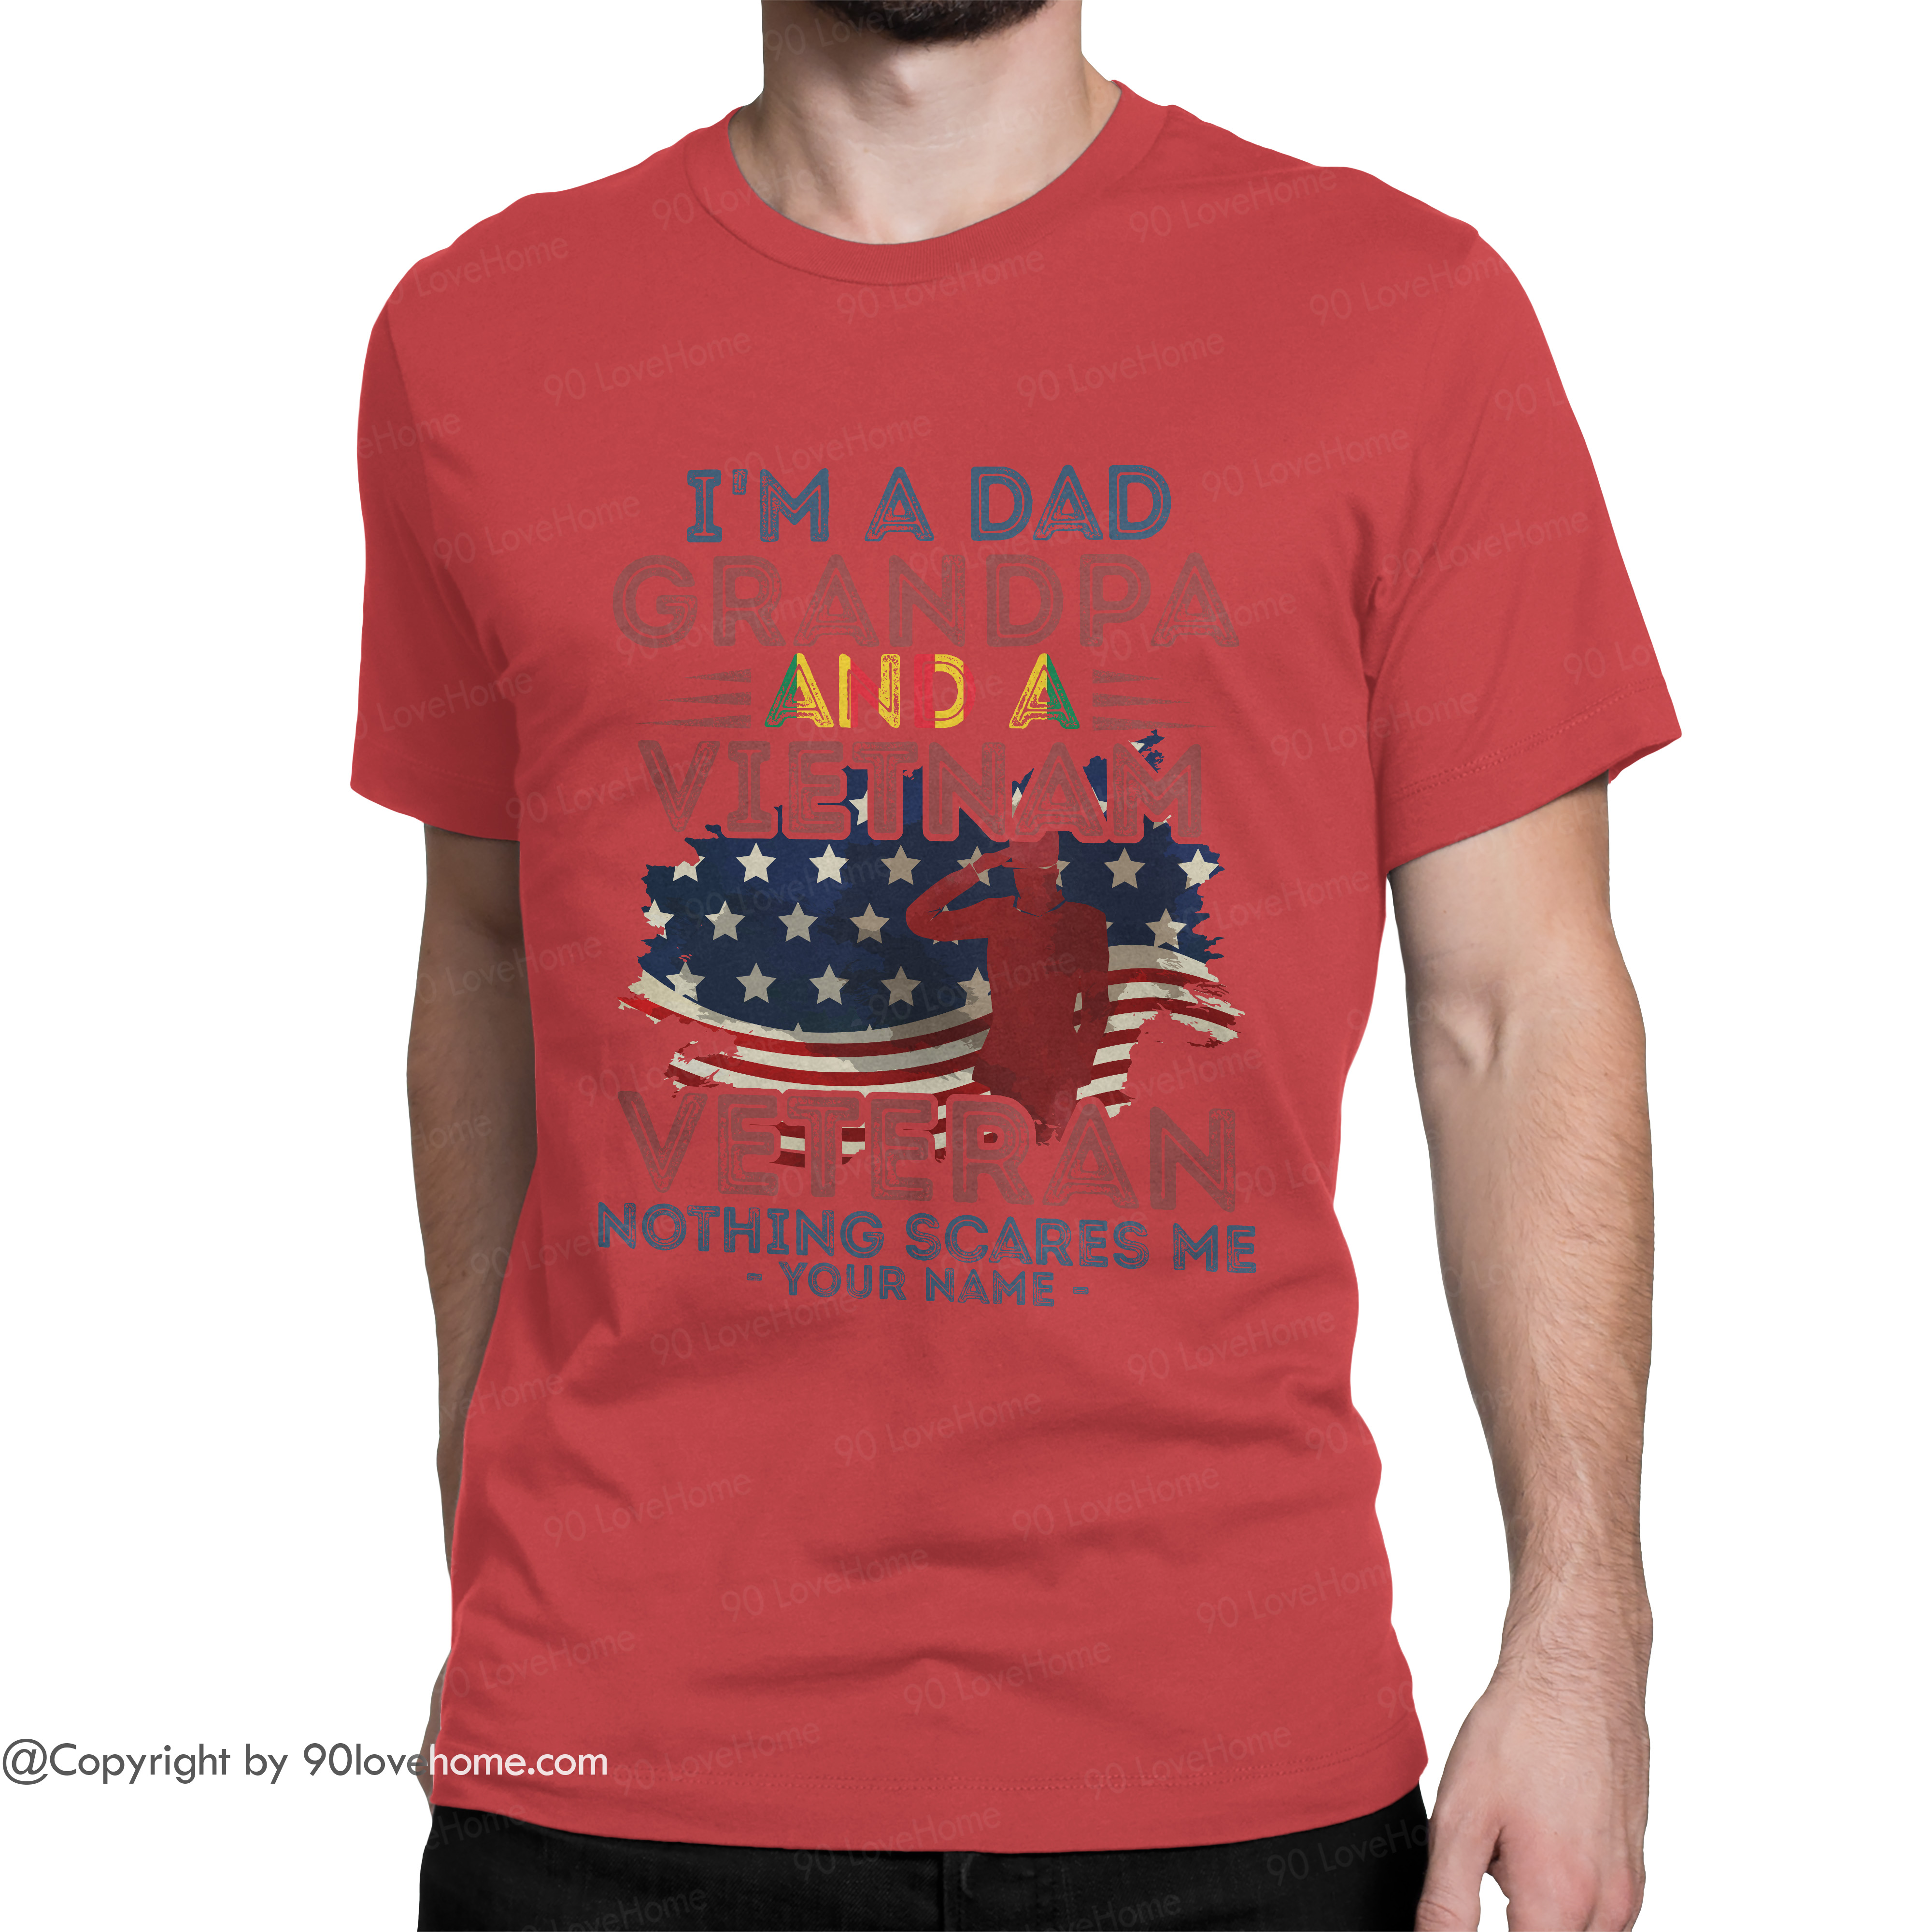 Dad T Shirt Personalized I'm A Dad Grandpa Vietnam Veteran Unisex T-shirt US Flag Army Dad Tee 4th of July Father's Day Birthday Gift For Grandpa Dad 90LoveHome